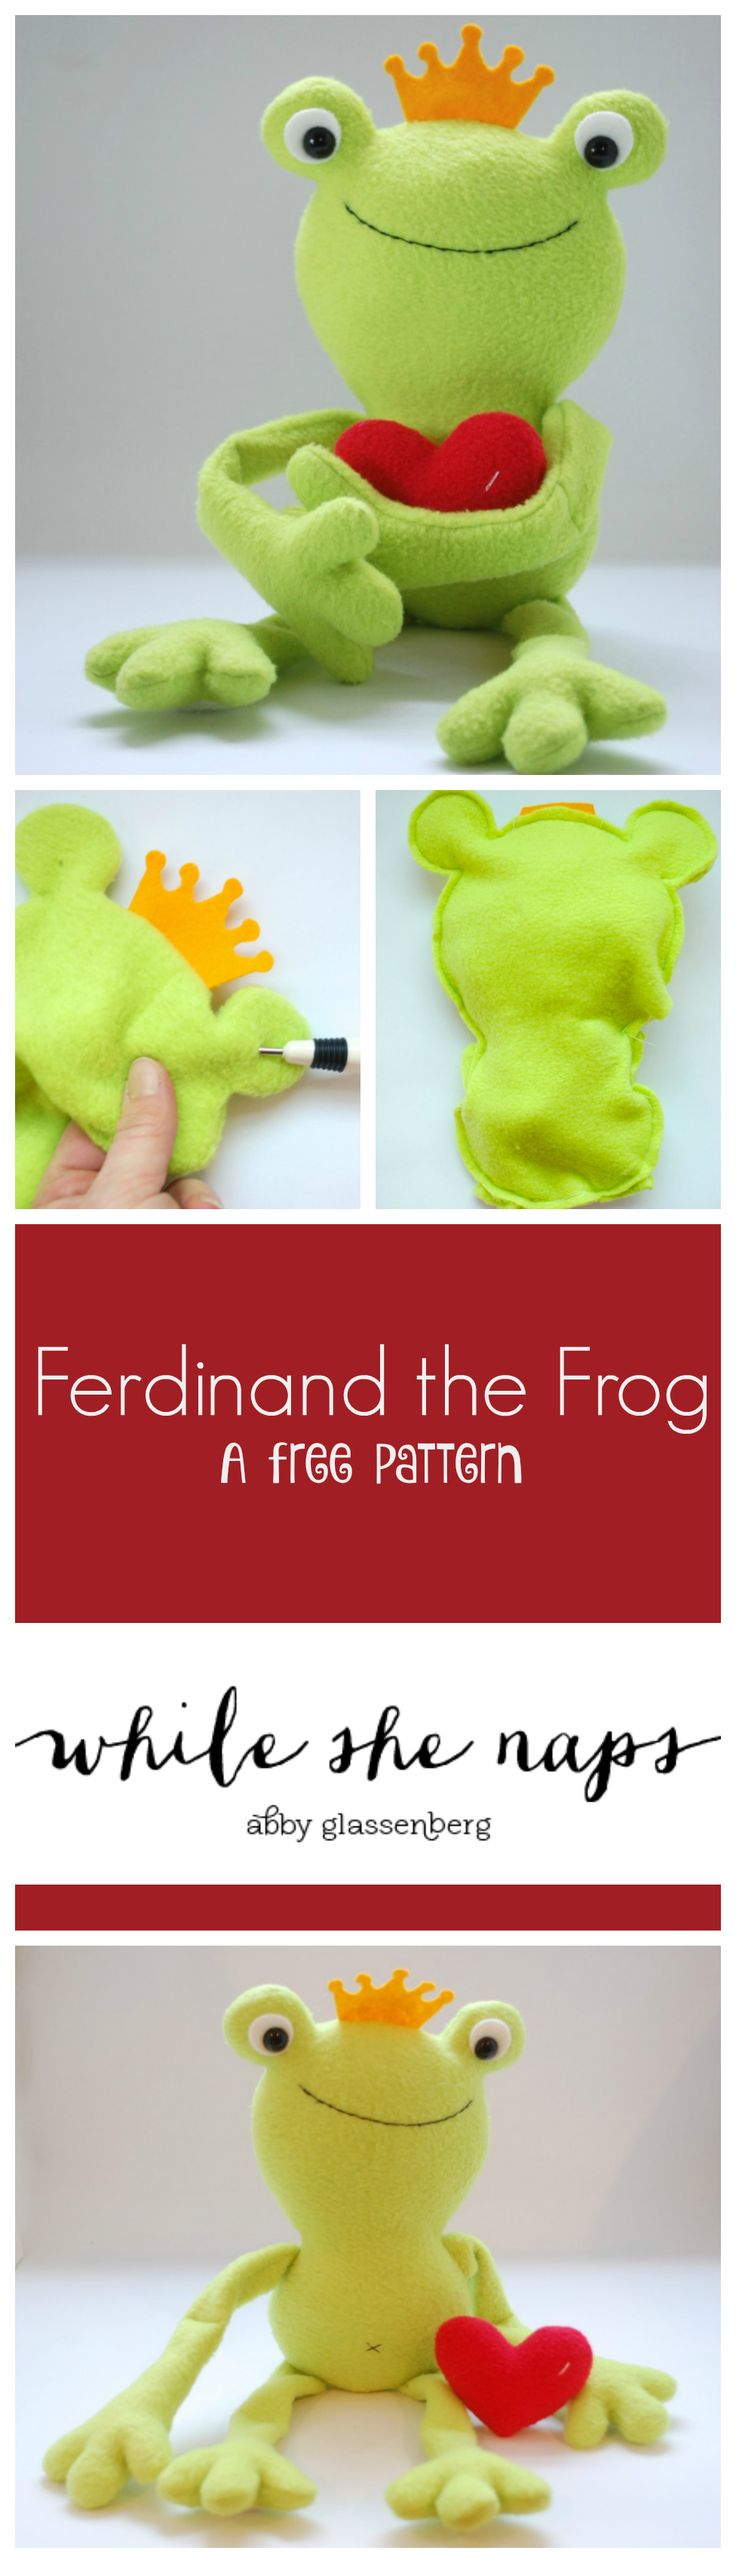 Make an adorable frog prince with this free pattern.